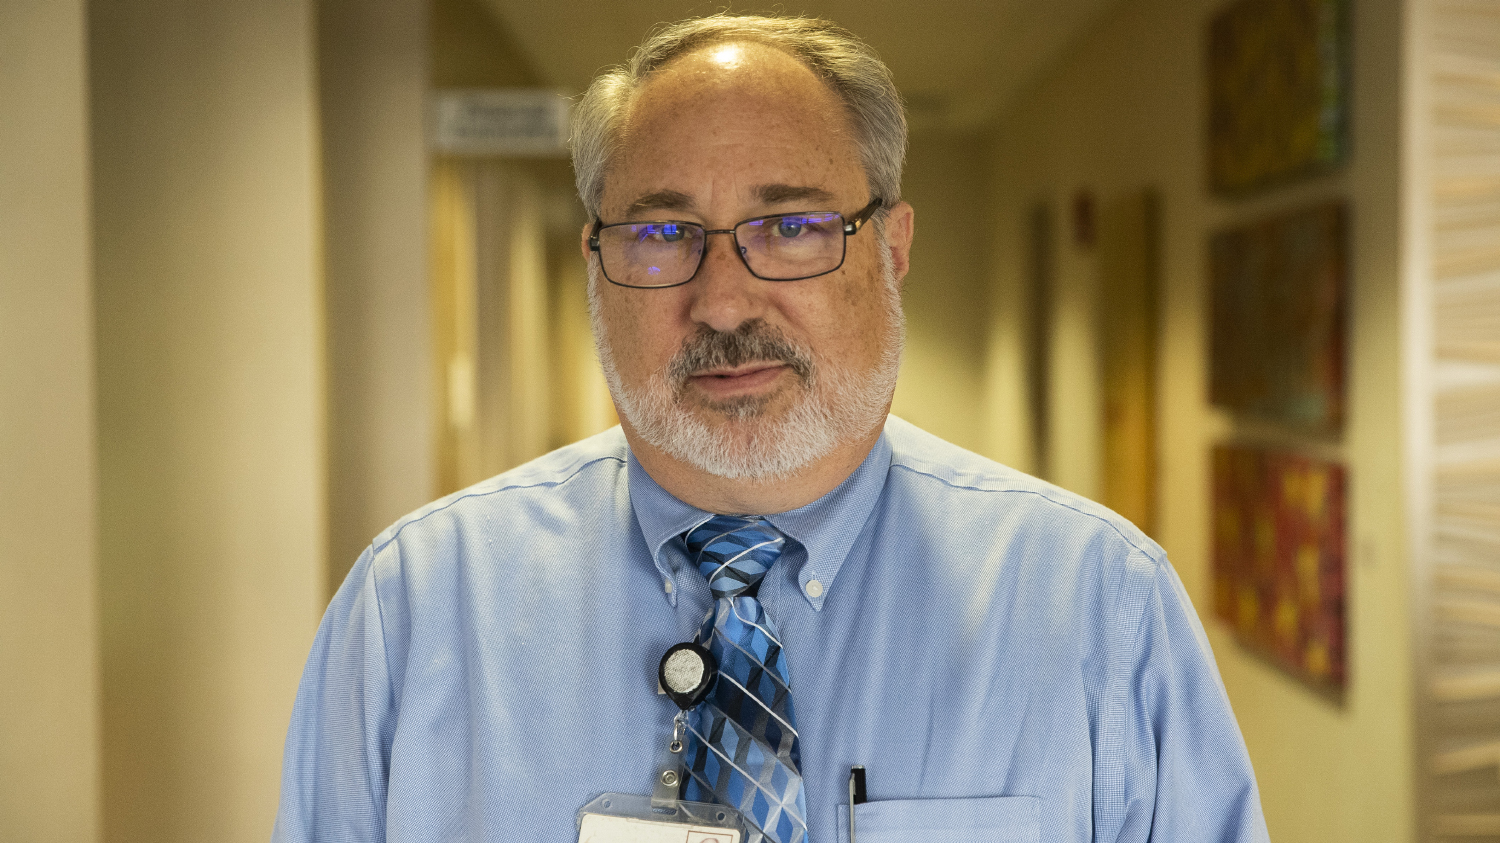 UIHC maternity researcher Stephen Hunter poses for a portrait on Monday Oct. 7, 2019. Maternal medicine experts with UIHC, in partnership with the Iowa Department of Public Health have received a $10 million dollar grant to improve maternal health outcomes in the state.